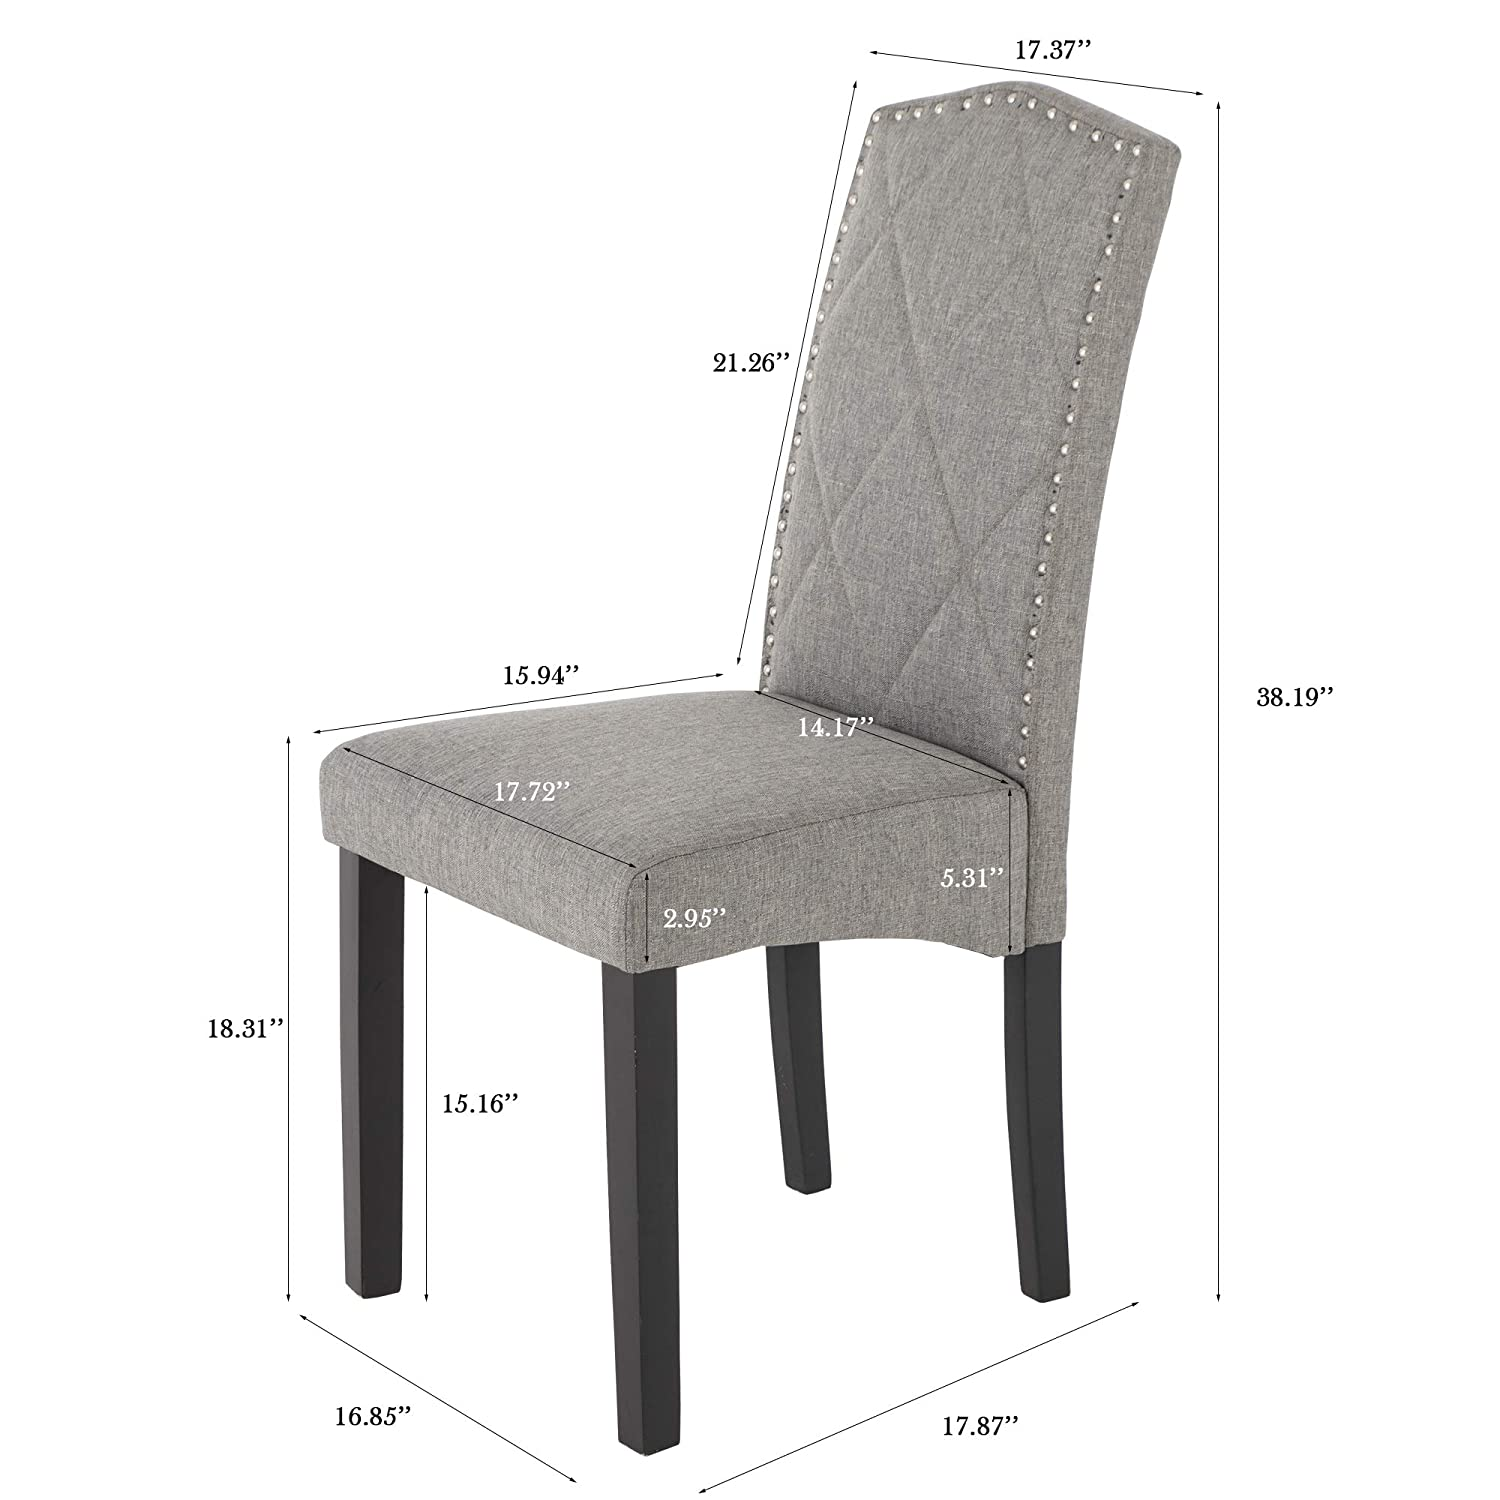 Mid-Century Modern Style Dining Chairs Set of 2,Gray Fabric and Comfortable Chairs, Sturdy Wood Chair.